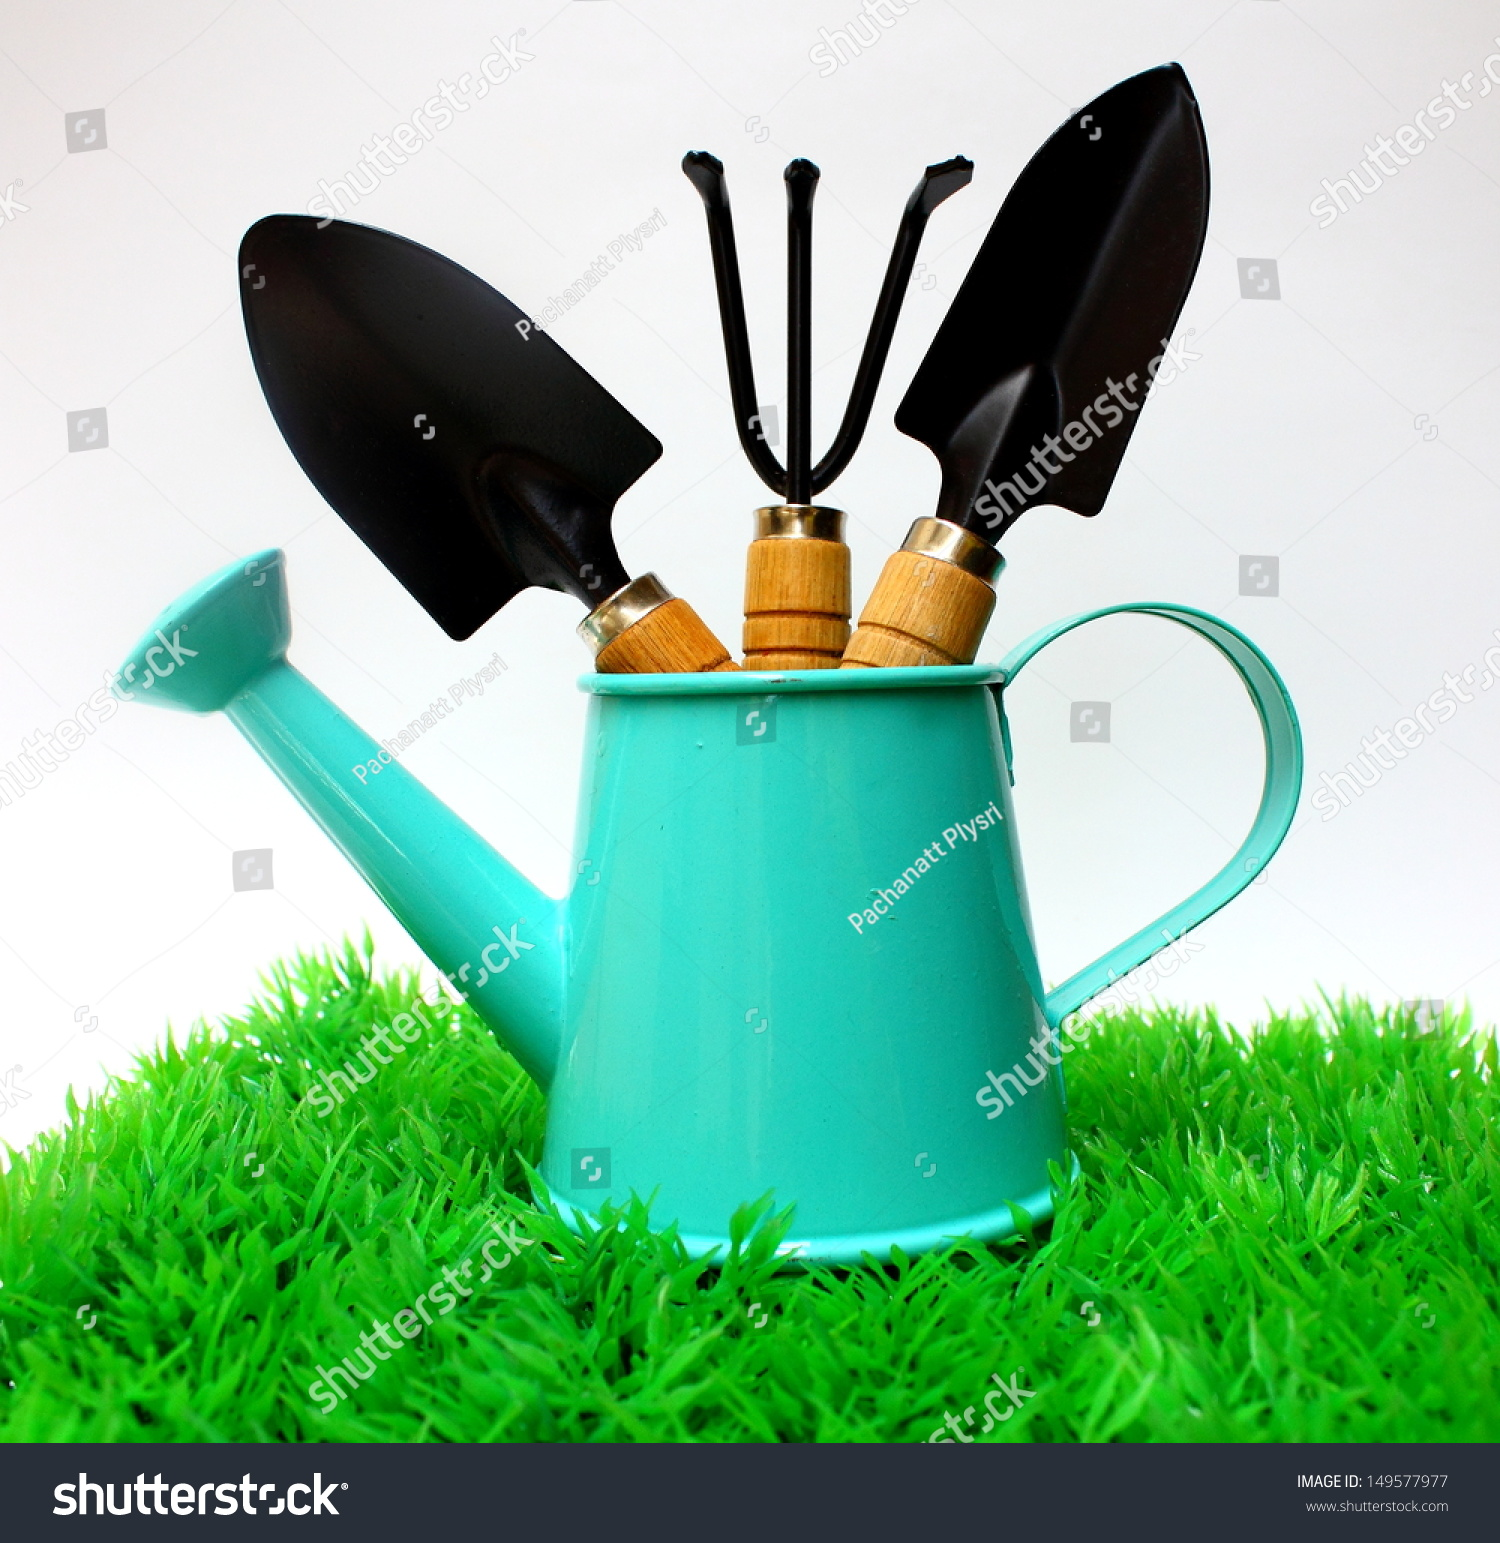 Gardening tools in watering can on grass on white for Gardening tools watering